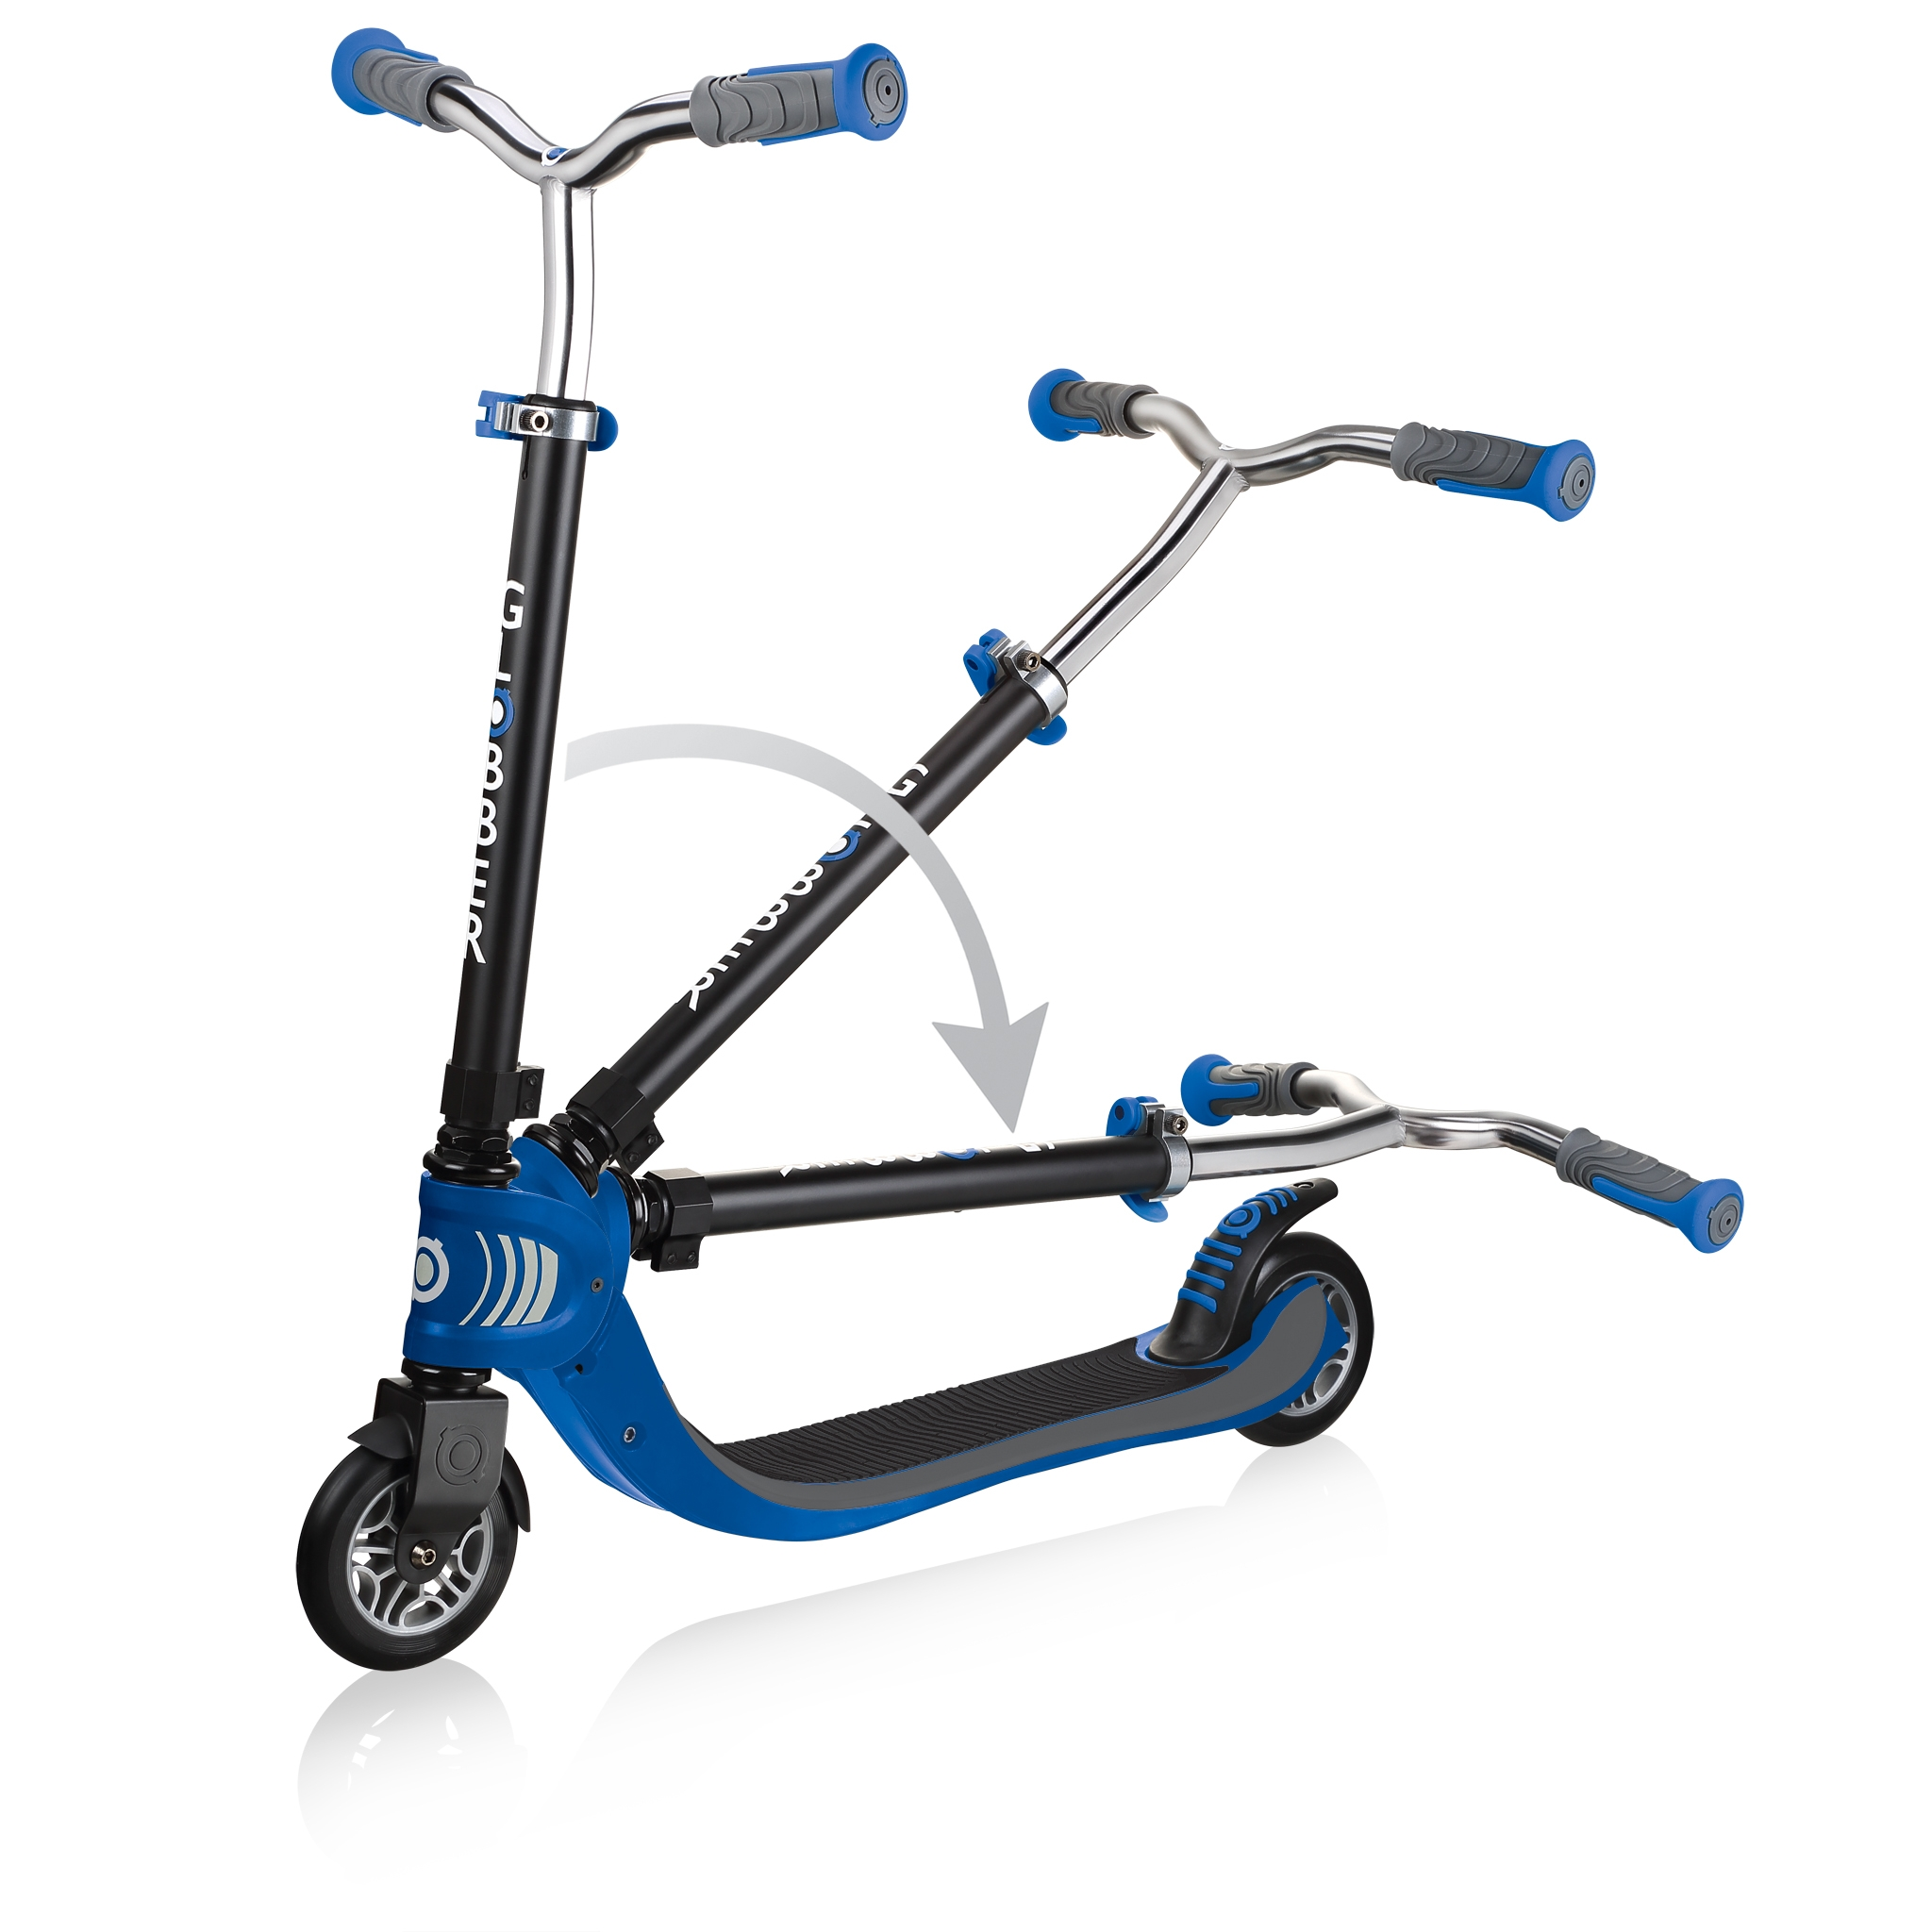 FLOW-FOLDABLE-125-2-wheel-folding-scooter-for-kids-navy-blue